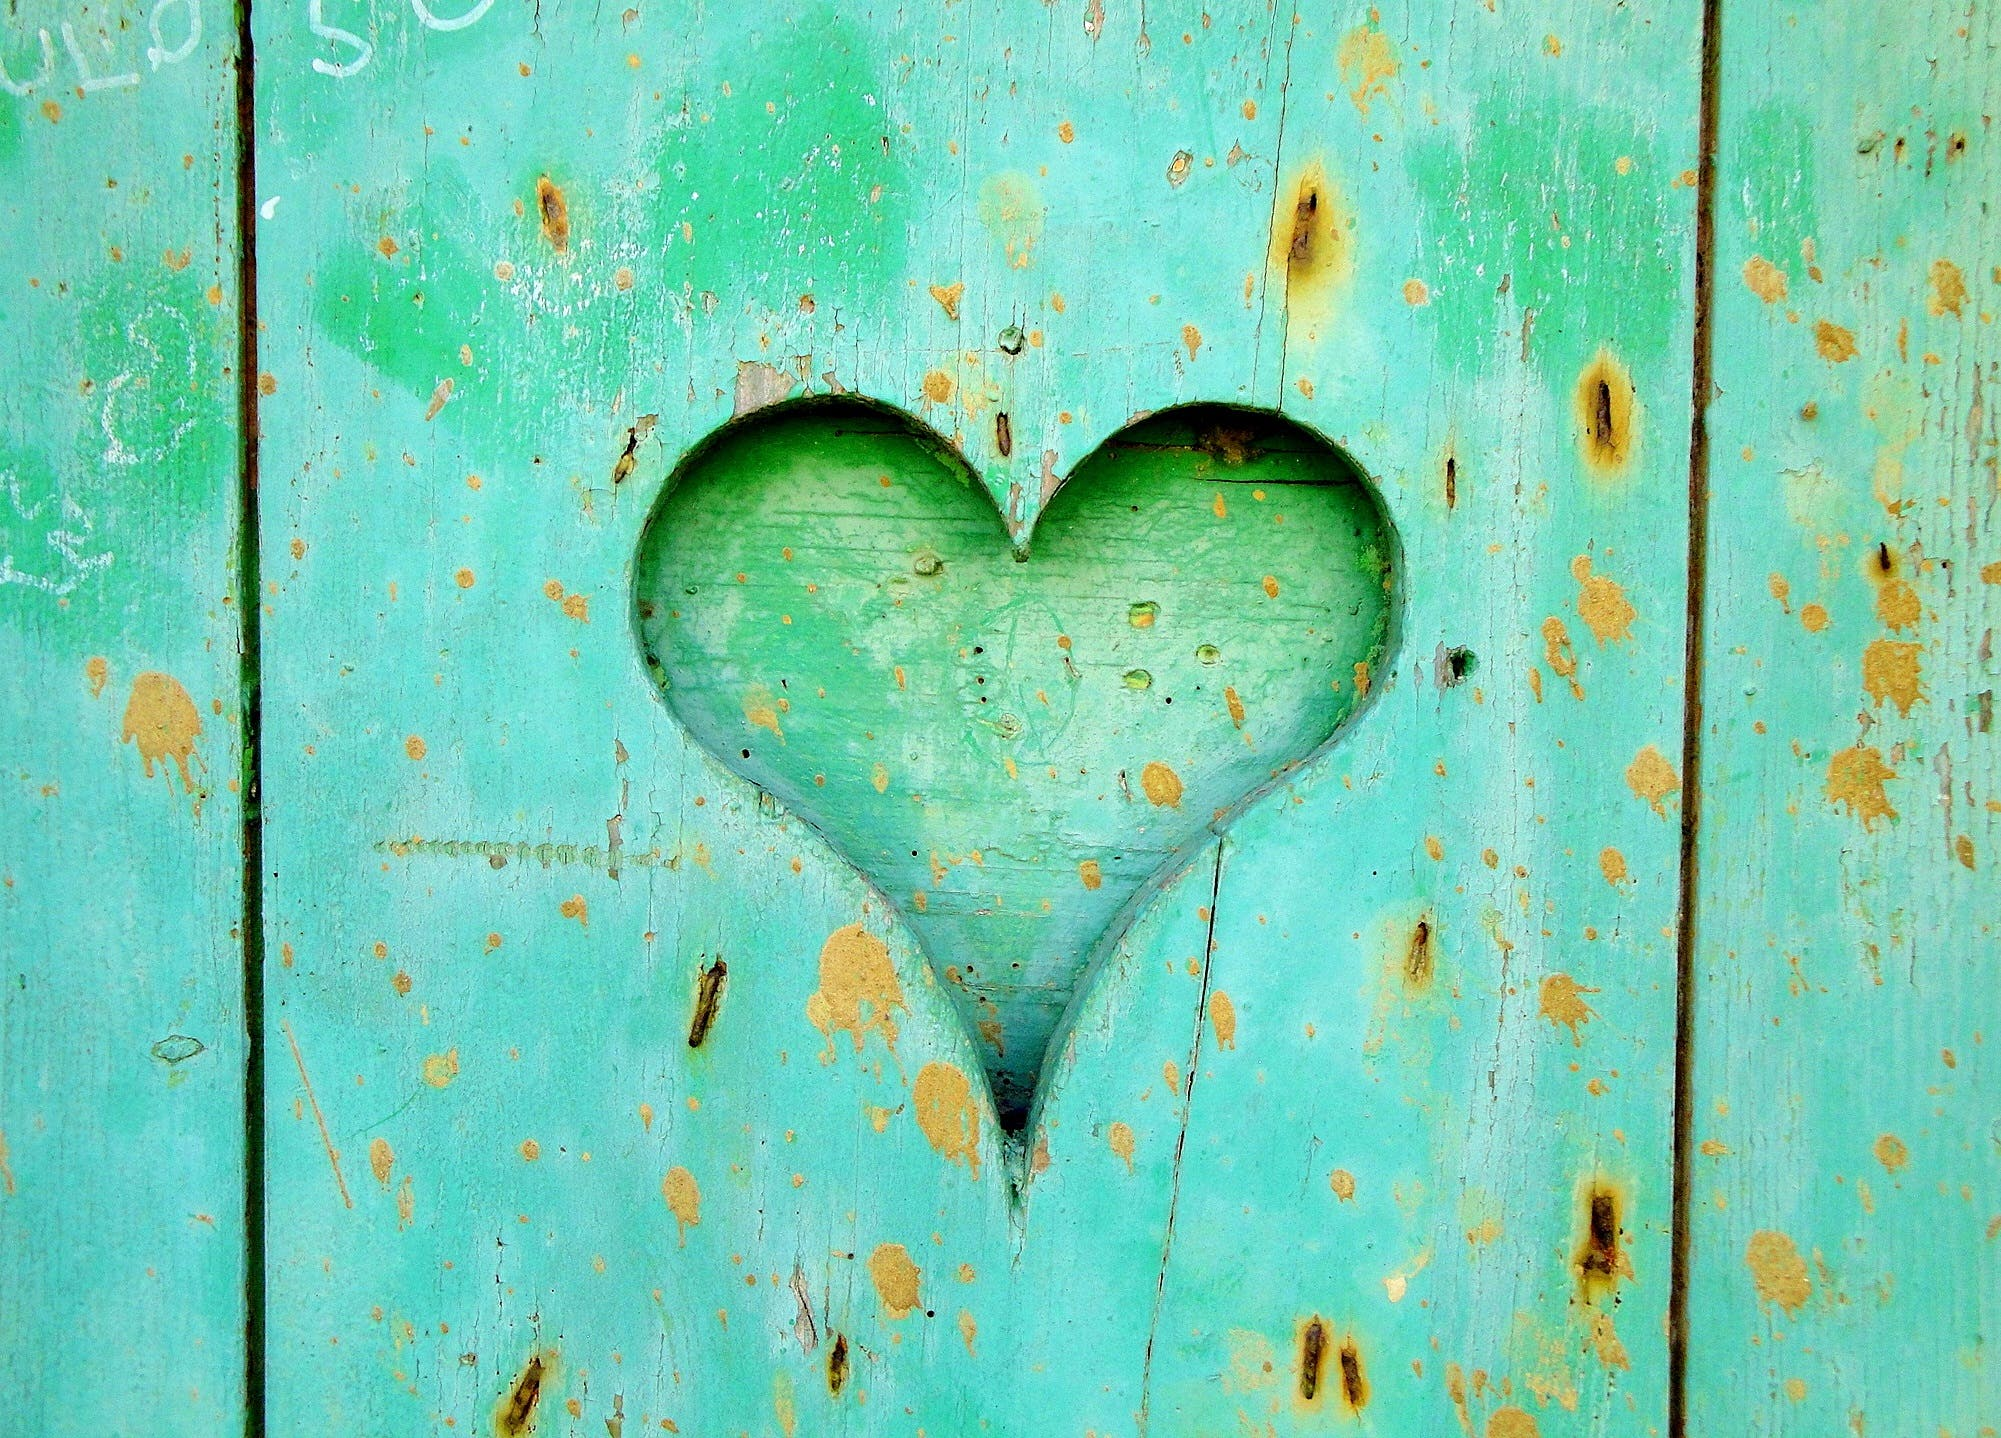 Green Wooden Board With Heart Hole